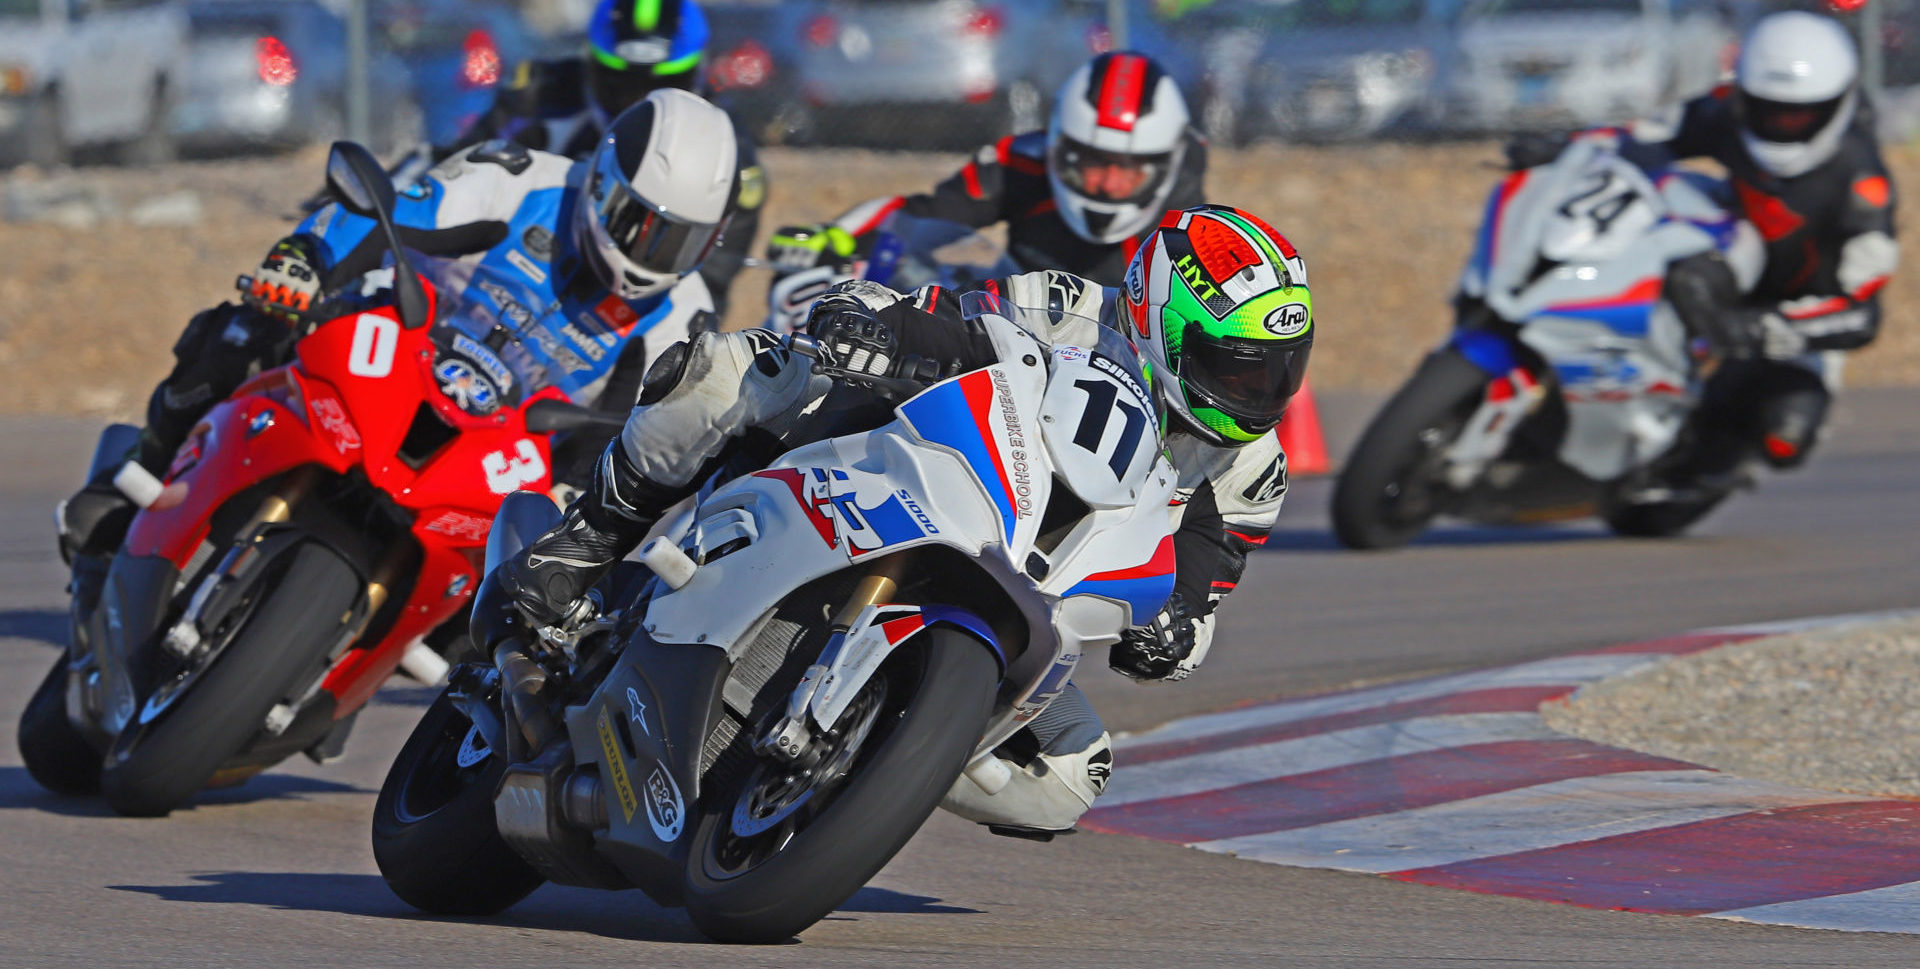 A scene from a California Superbike School. Photo courtesy of California Superbike School.